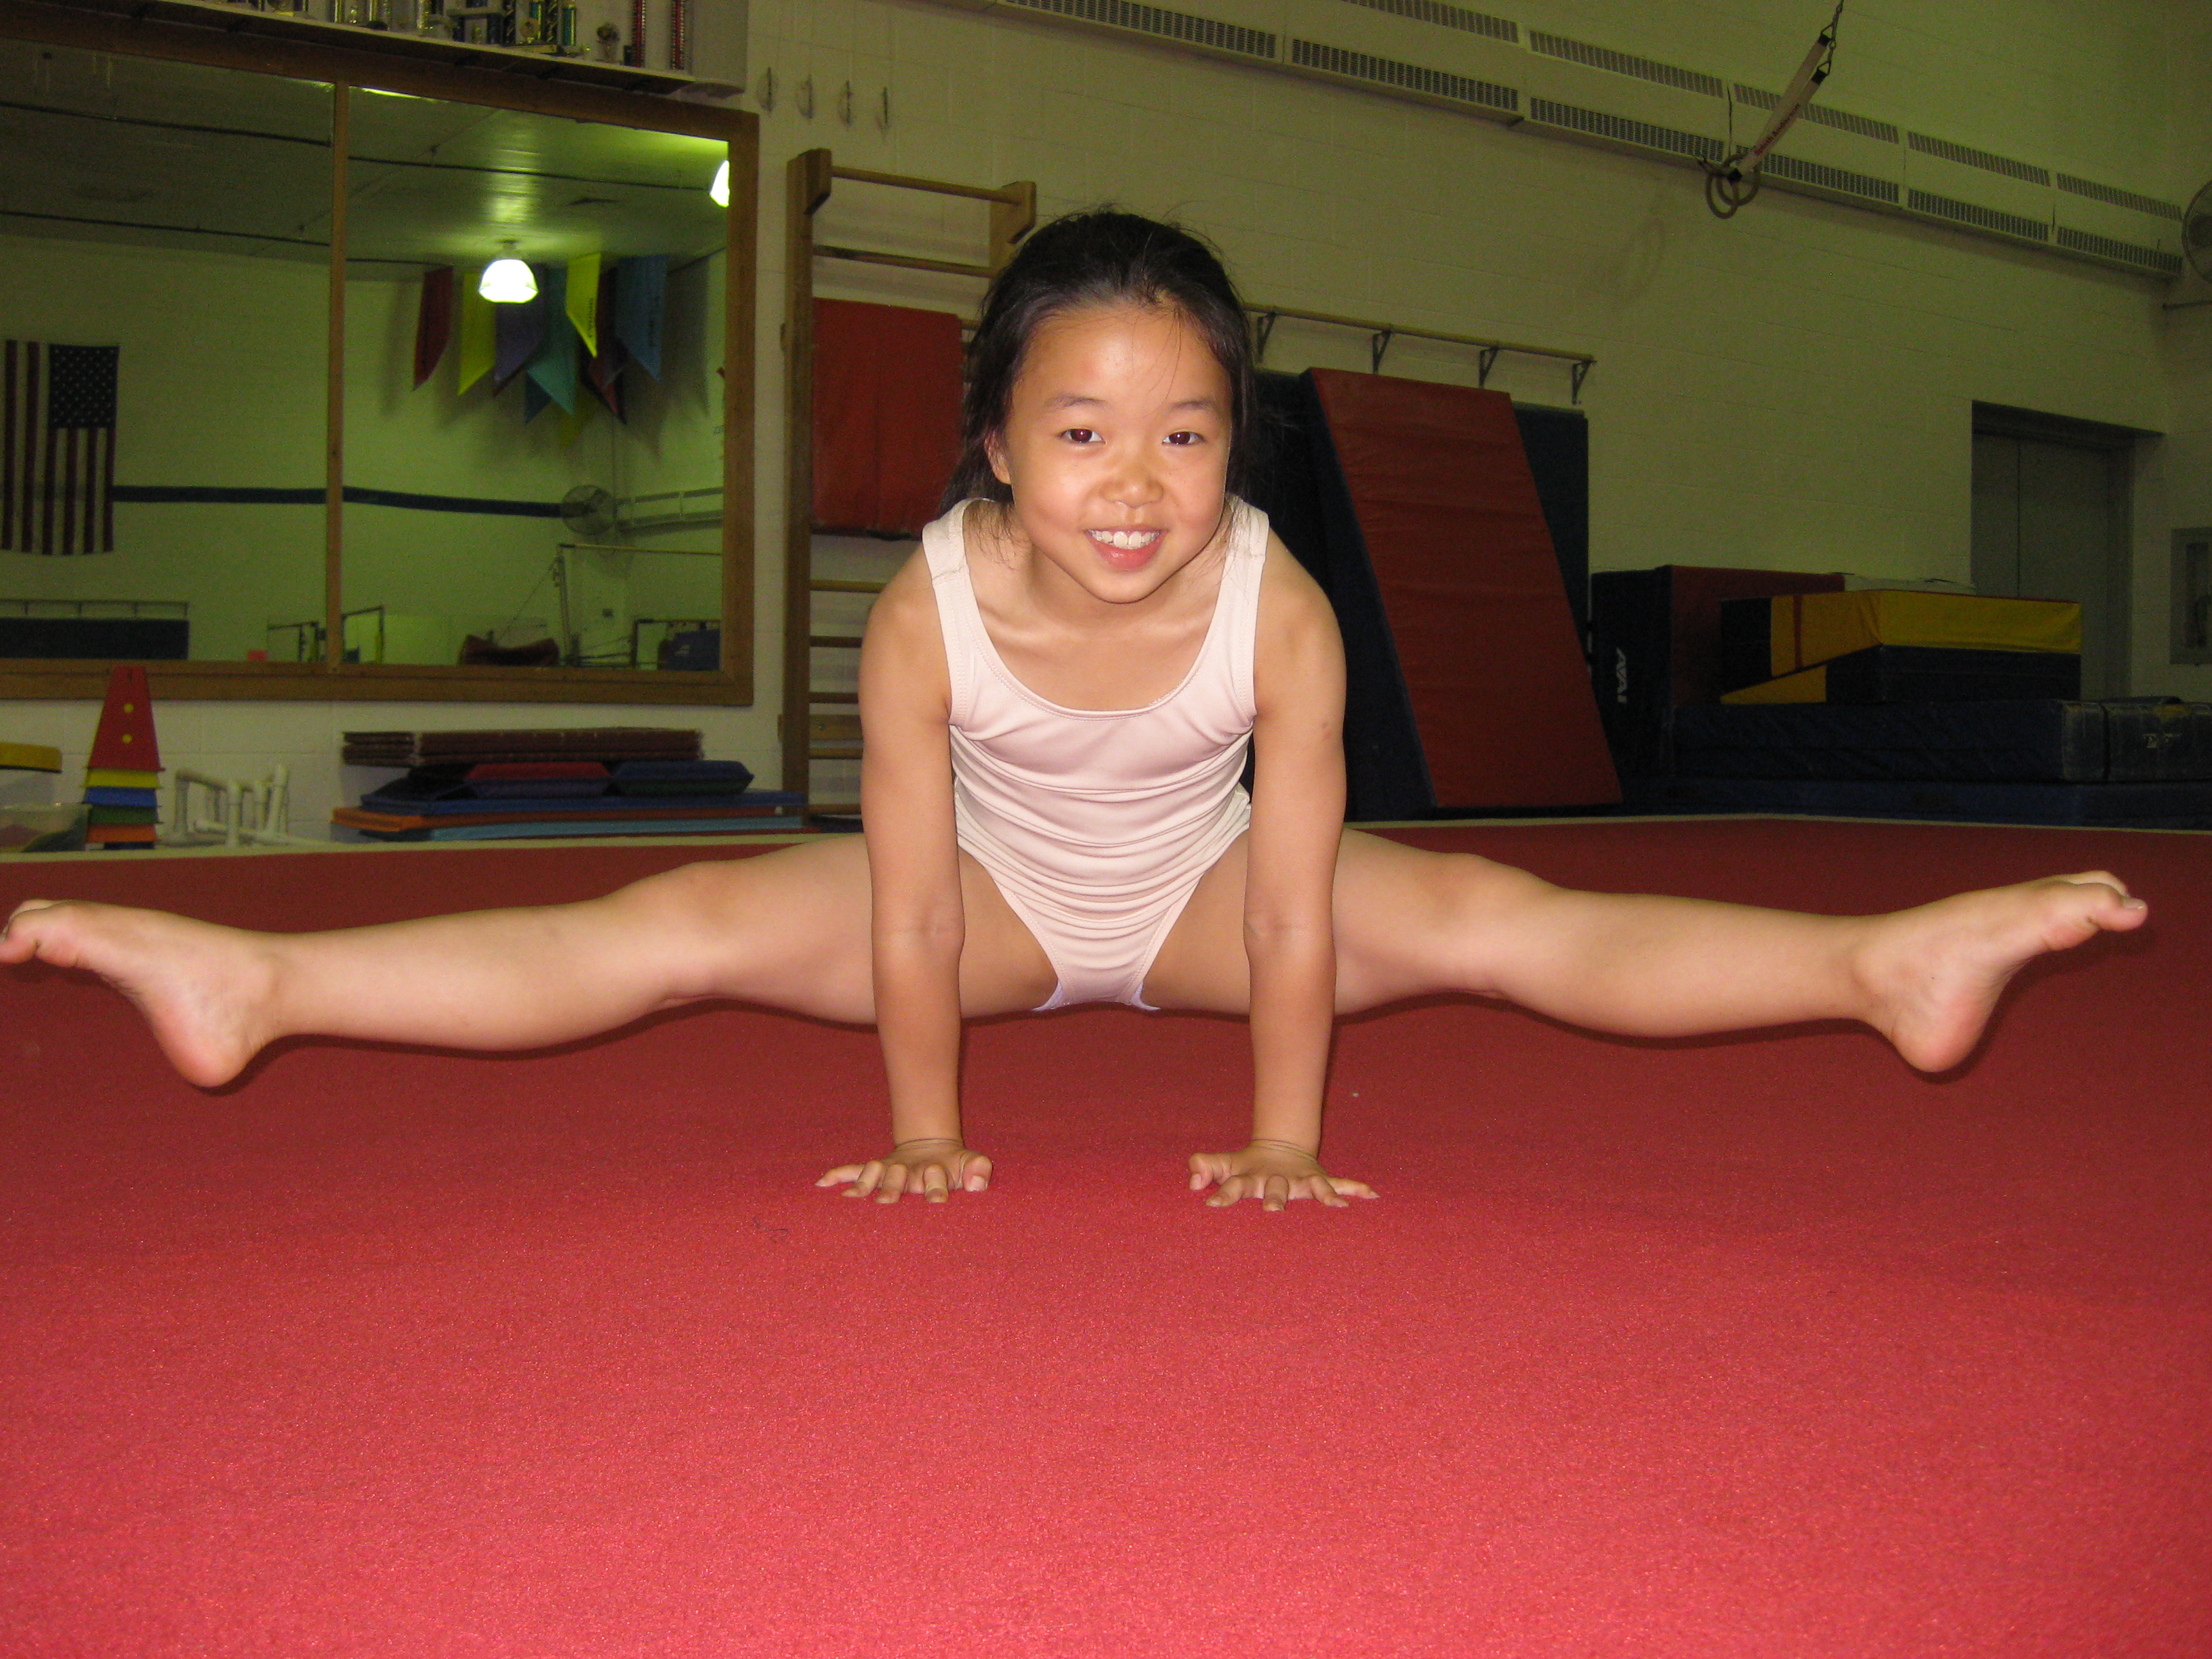 Japanese Teen Gymnast 57